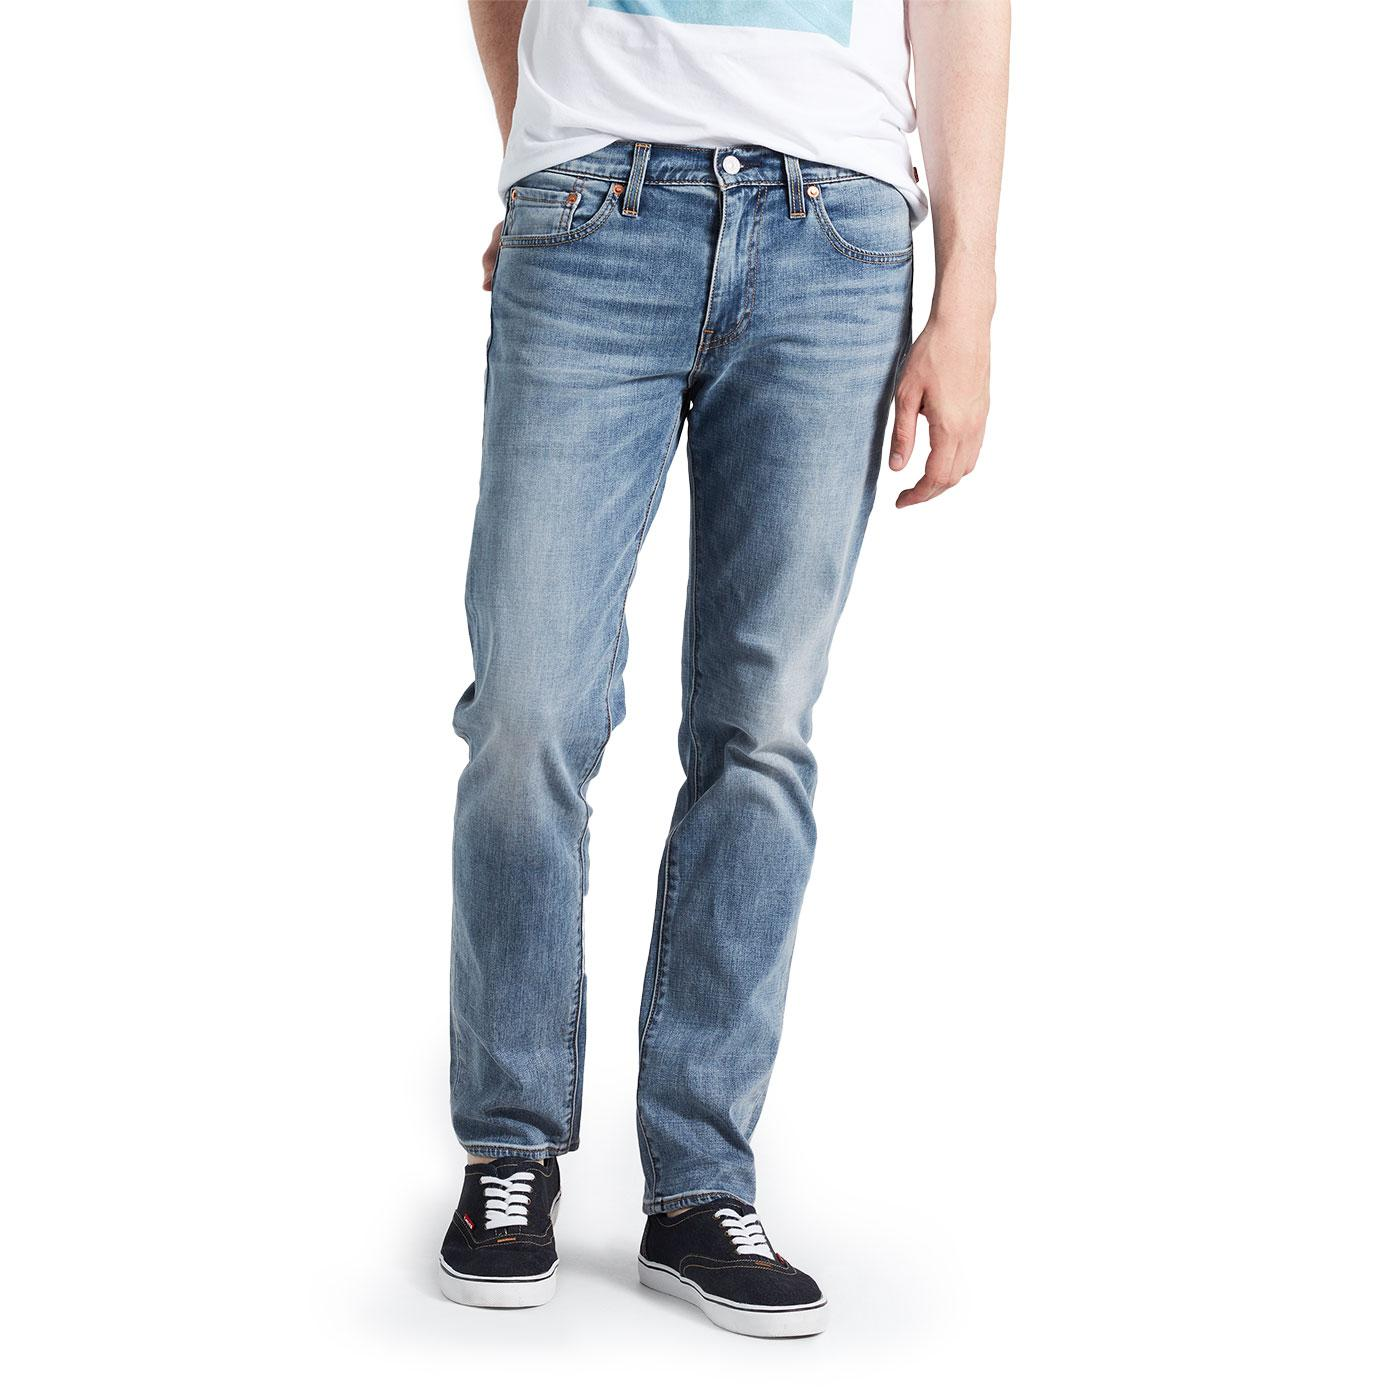 LEVI'S 511 Retro Slim Denim Jeans (Agean Adapt)